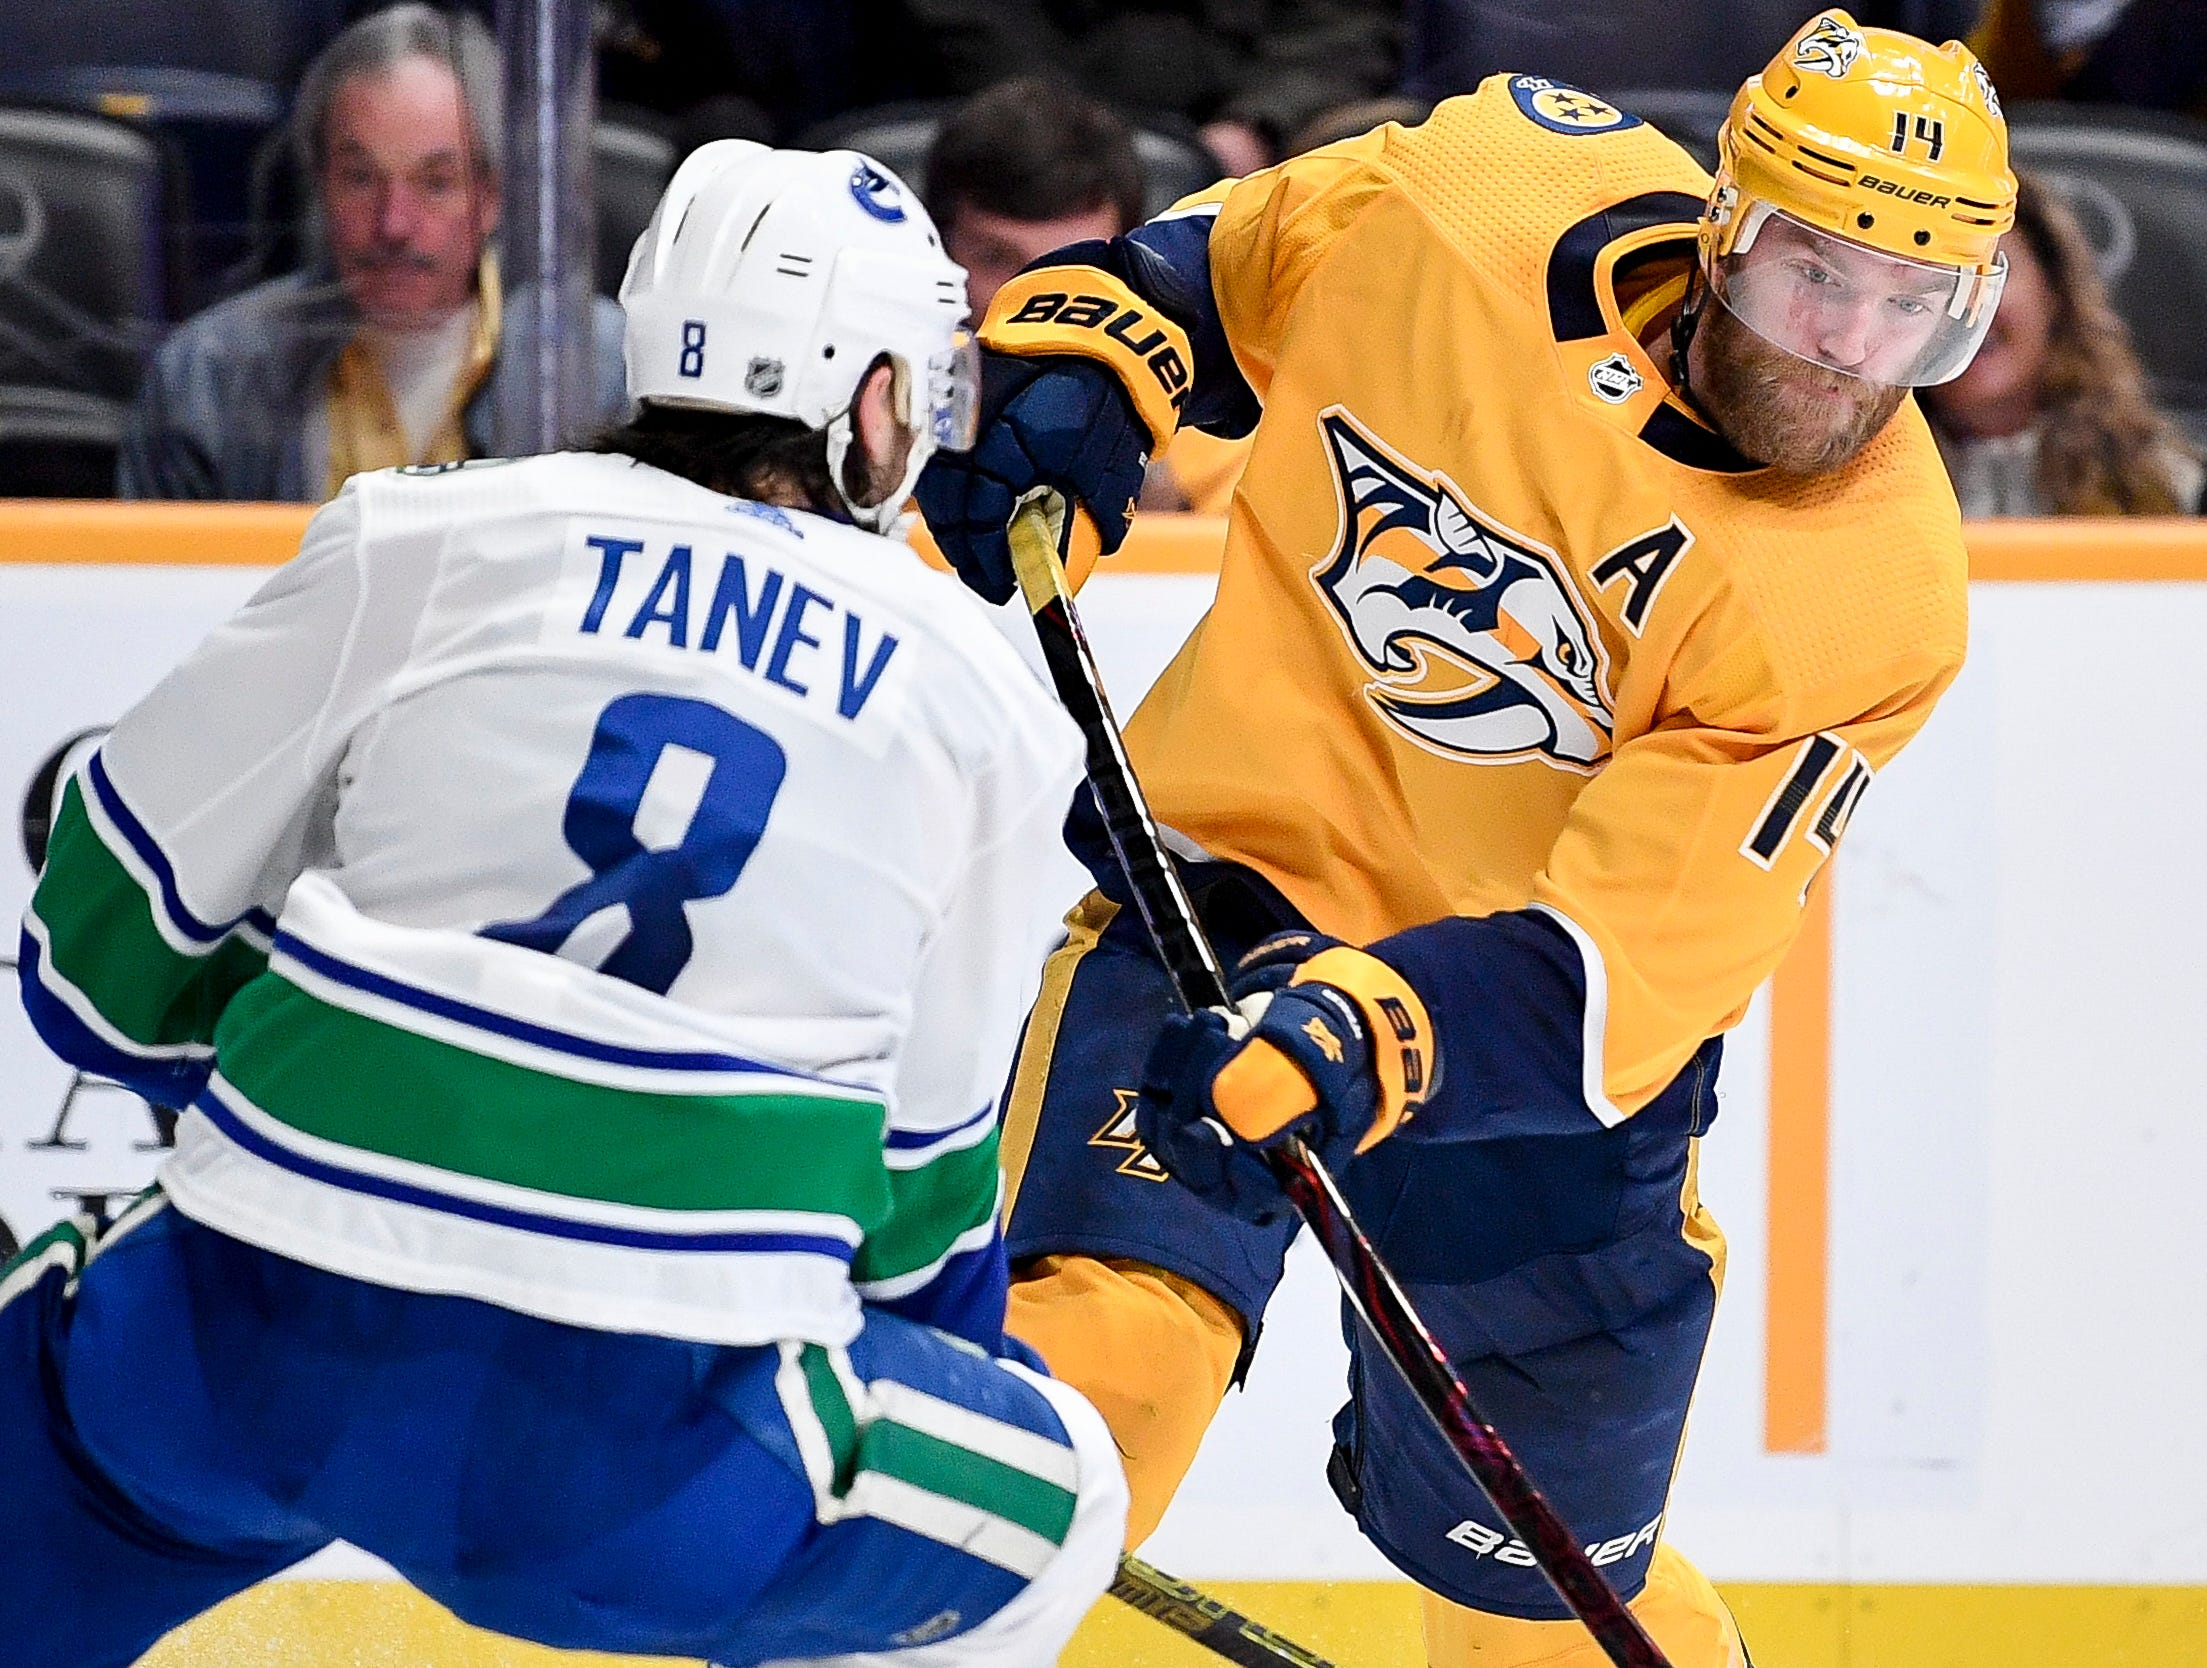 Dec 13: Predators 4, Canucks 3 (OT) -- Nashville Predators defenseman Mattias Ekholm (14) shoots past Vancouver Canucks defenseman Christopher Tanev (8) during the third period at Bridgestone Arena in Nashville, Tenn., Thursday, Dec. 13, 2018.